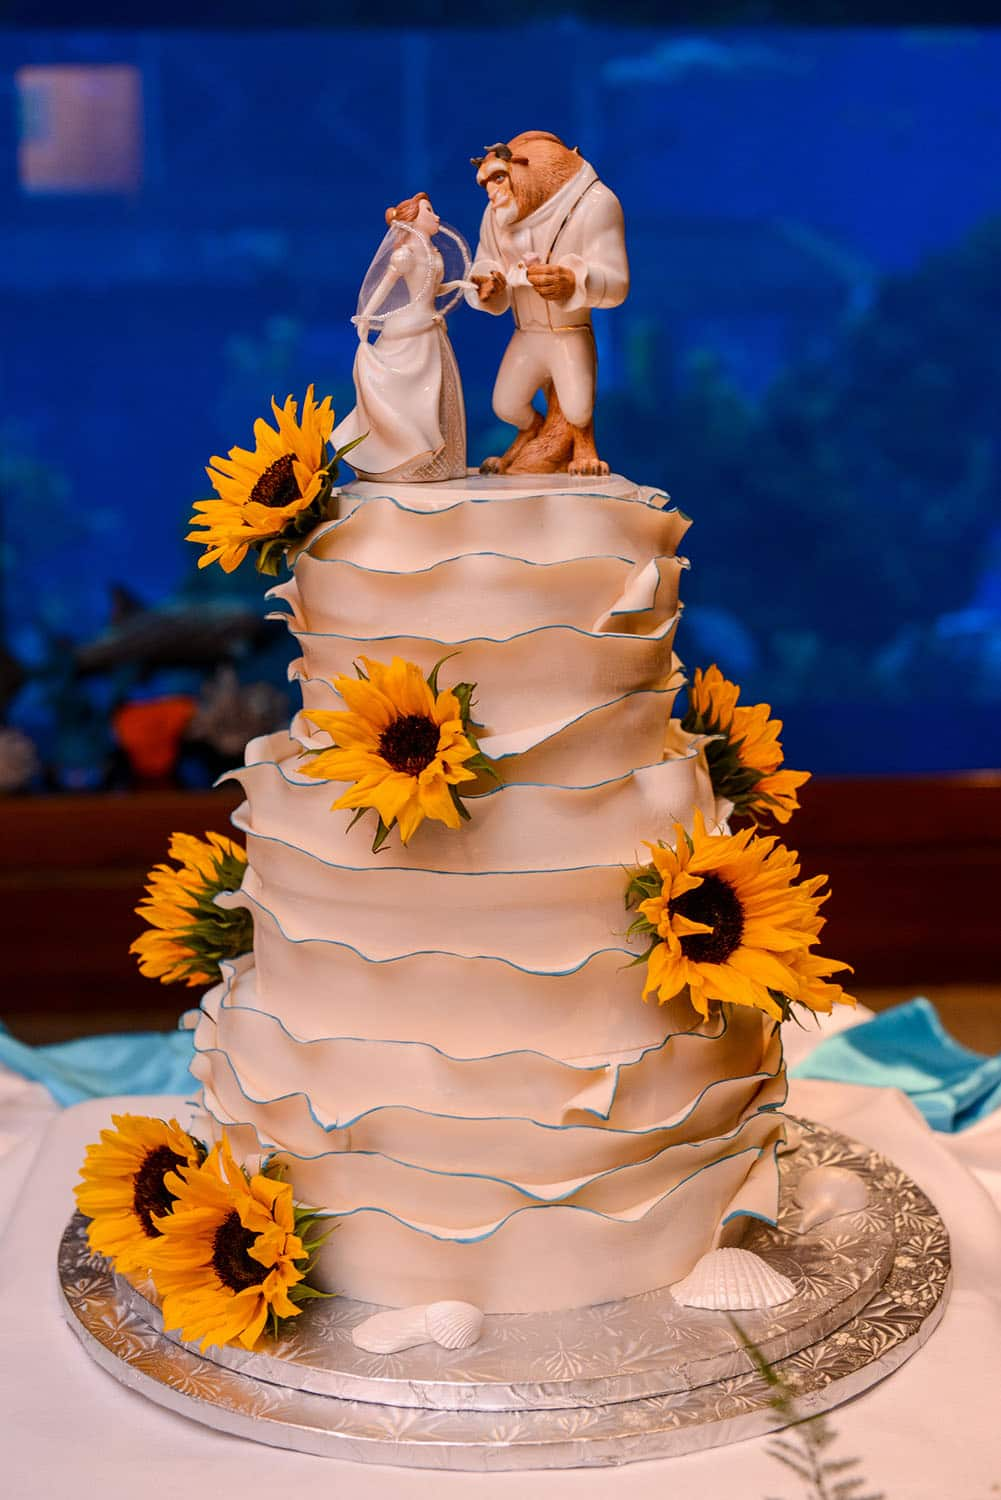 beauty and the beast wedding cake wedding cake wednesday and the beast sunflowers 1623